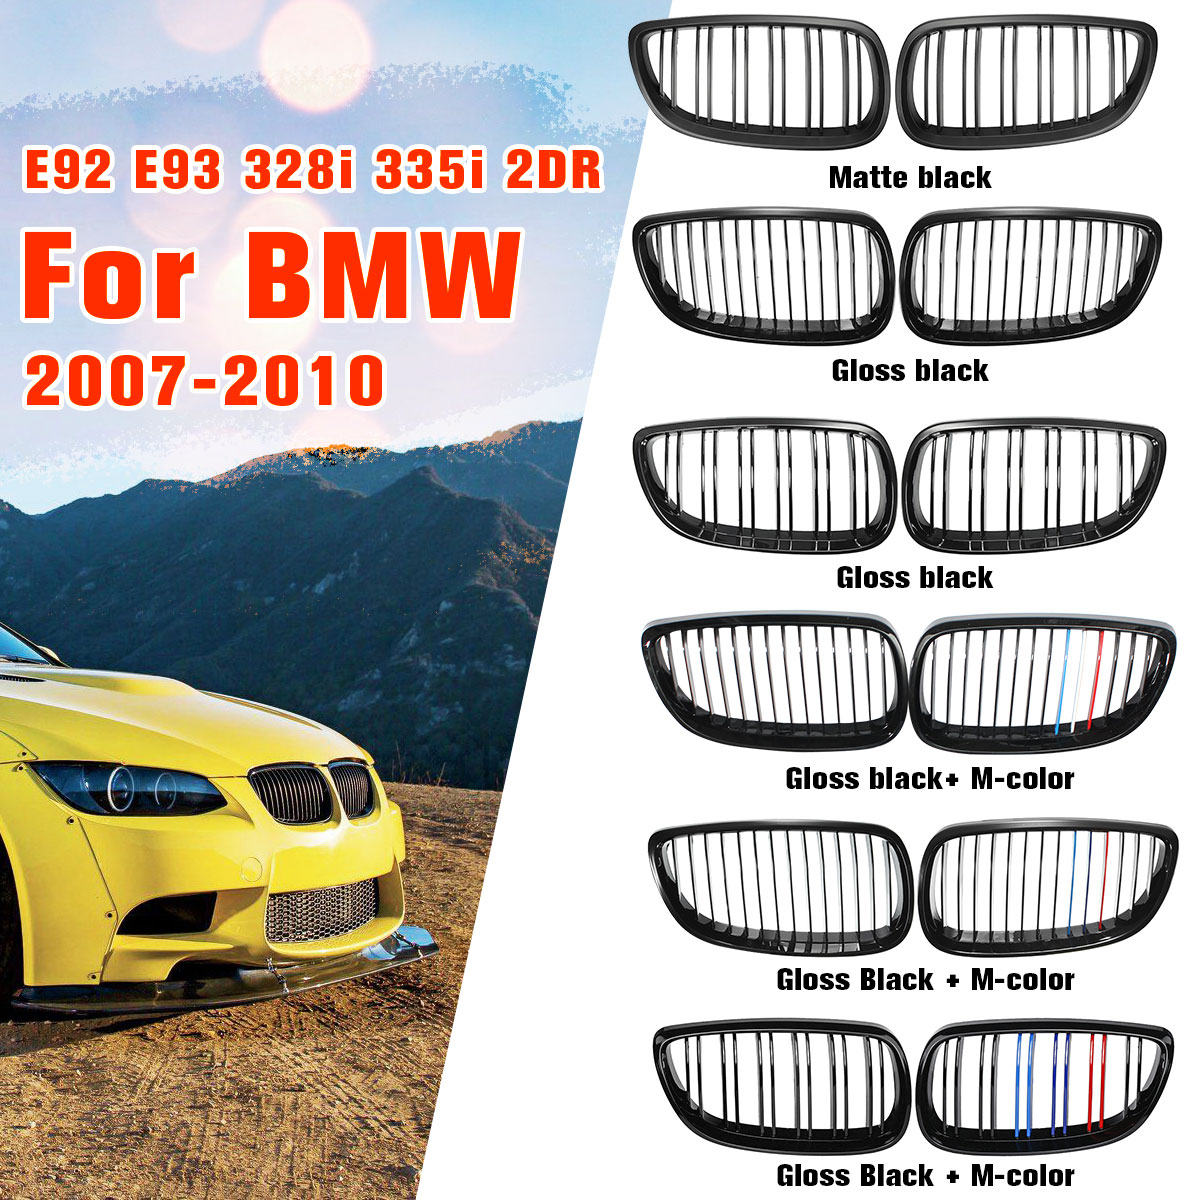 Gloss Matte Black M-color Dual Line Front Grille Kidney Grill For BMW E92 E93 M3 328i 335i 2Door 2007 2008 2009 Car Styling